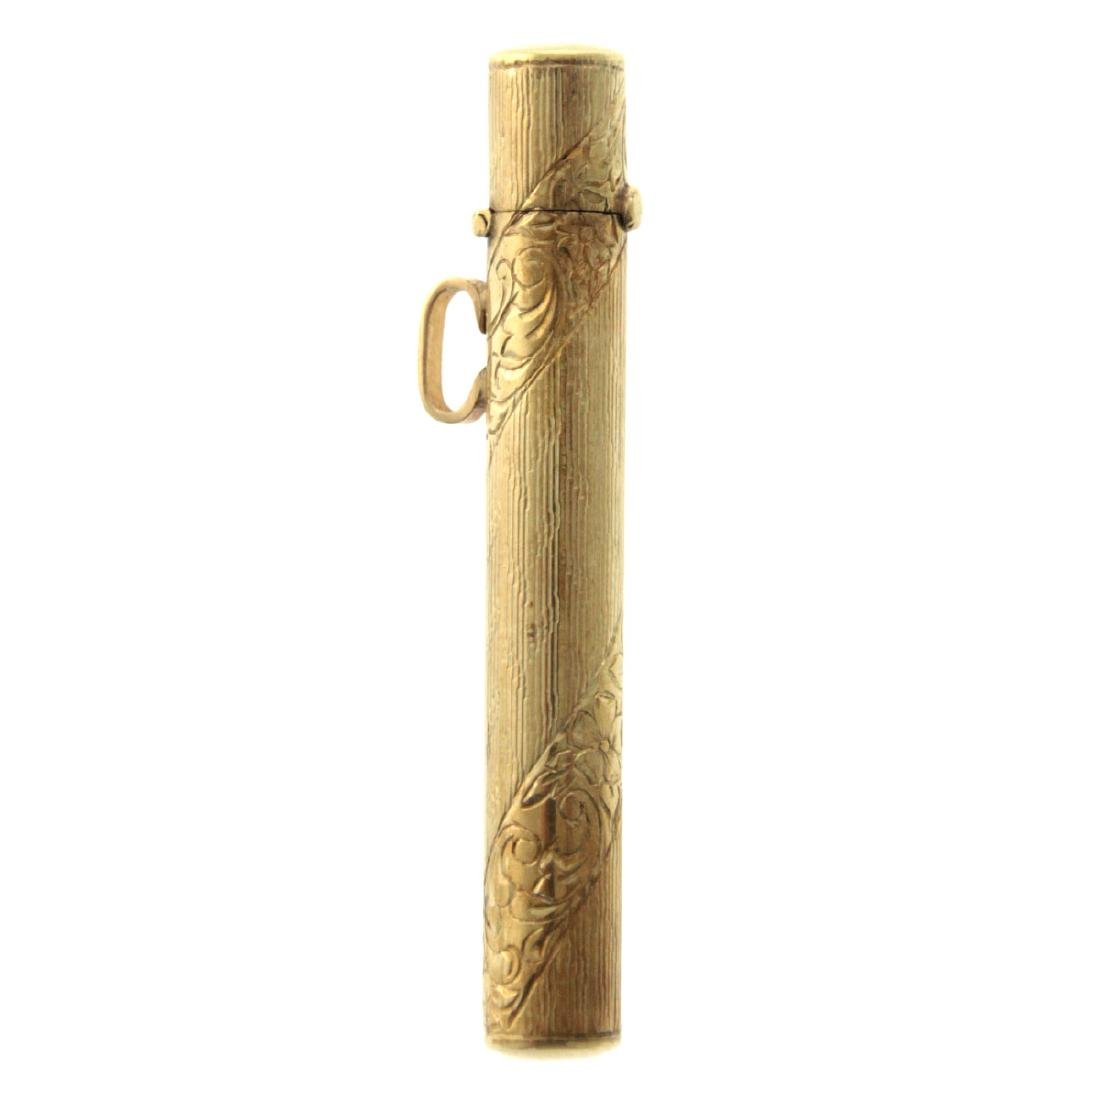 14k Yellow Gold Mezuzah Case Pendant.